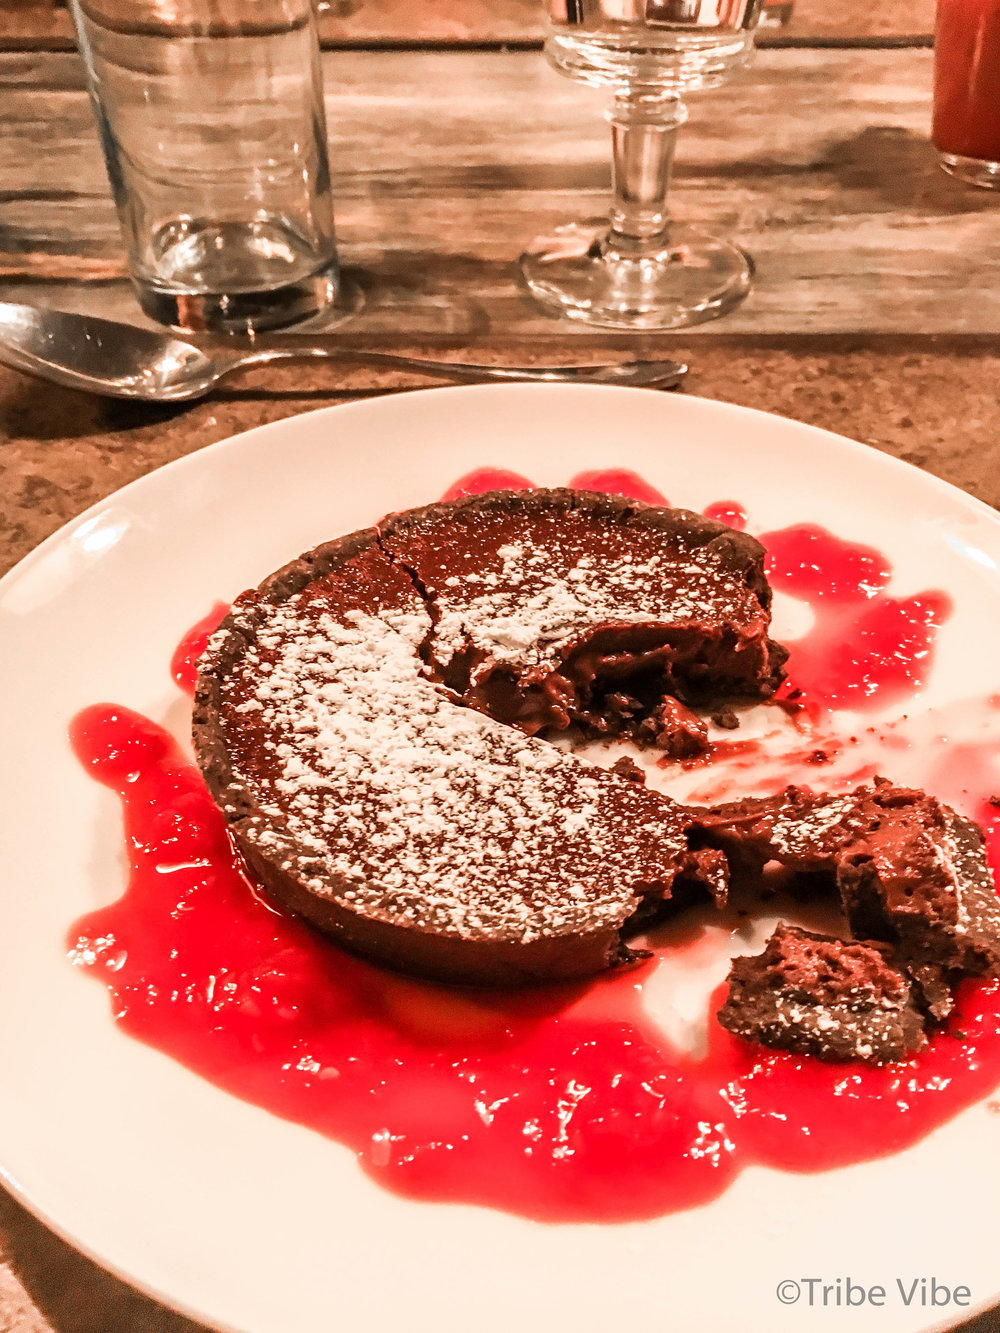 Dubai cooking class experience at Top Chef. Chocolate tart with raspberry coulis.